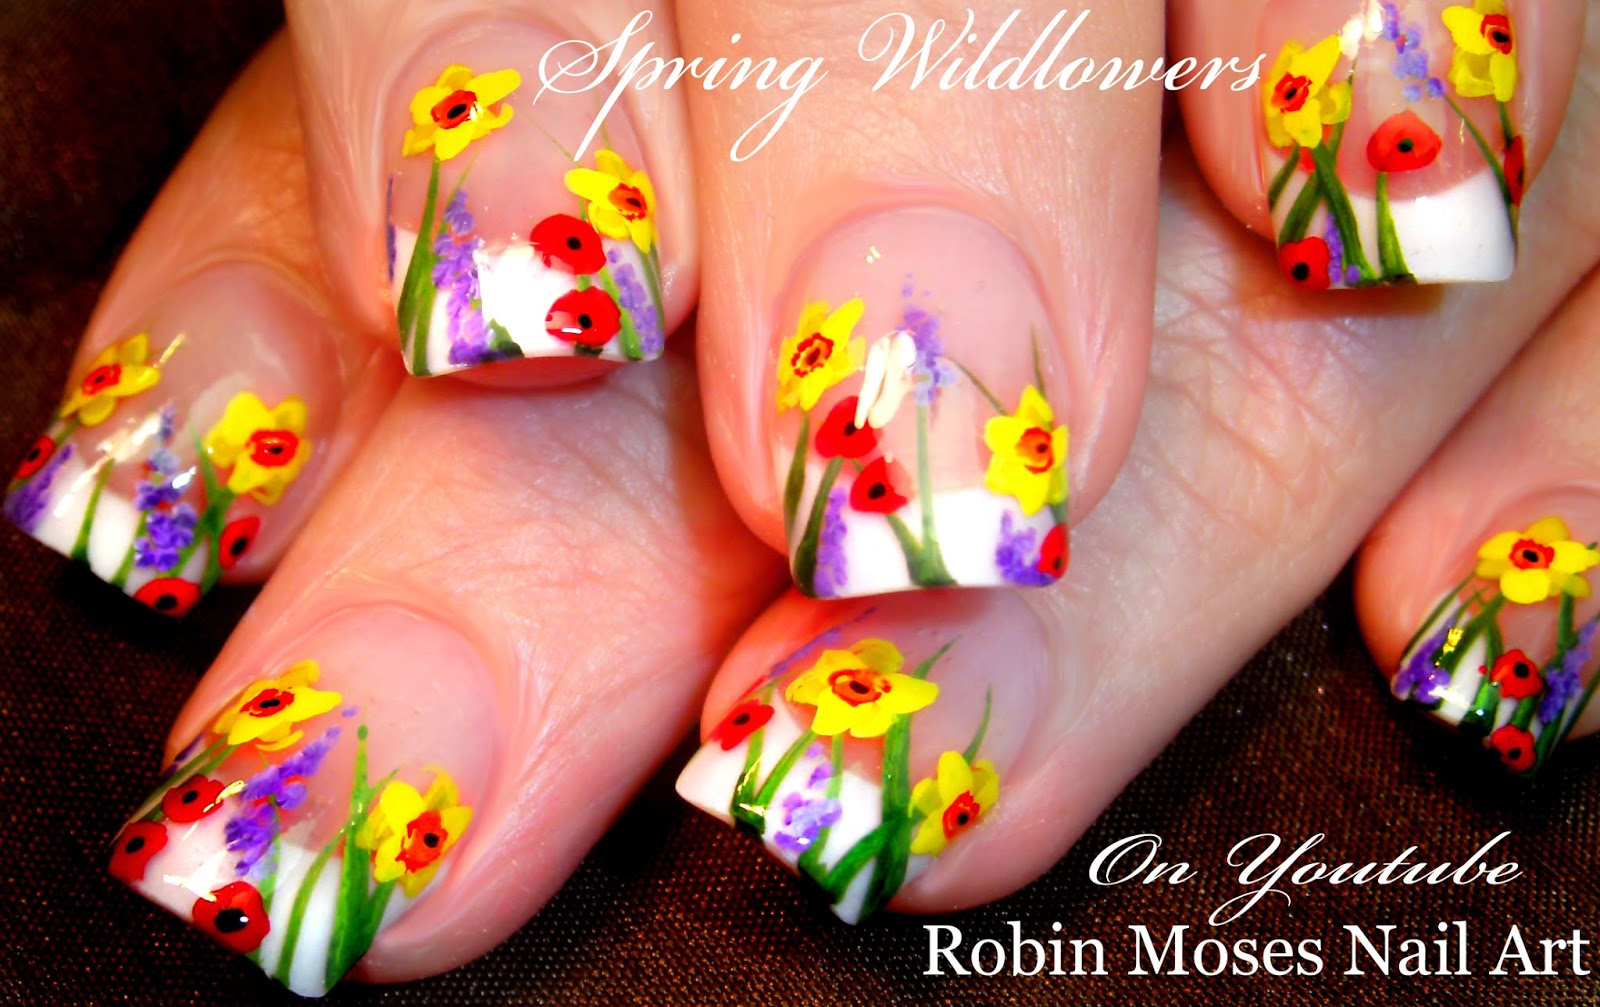 DIY Easy Spring 2016 Wild Flower Nail Art Design Full Tutorial